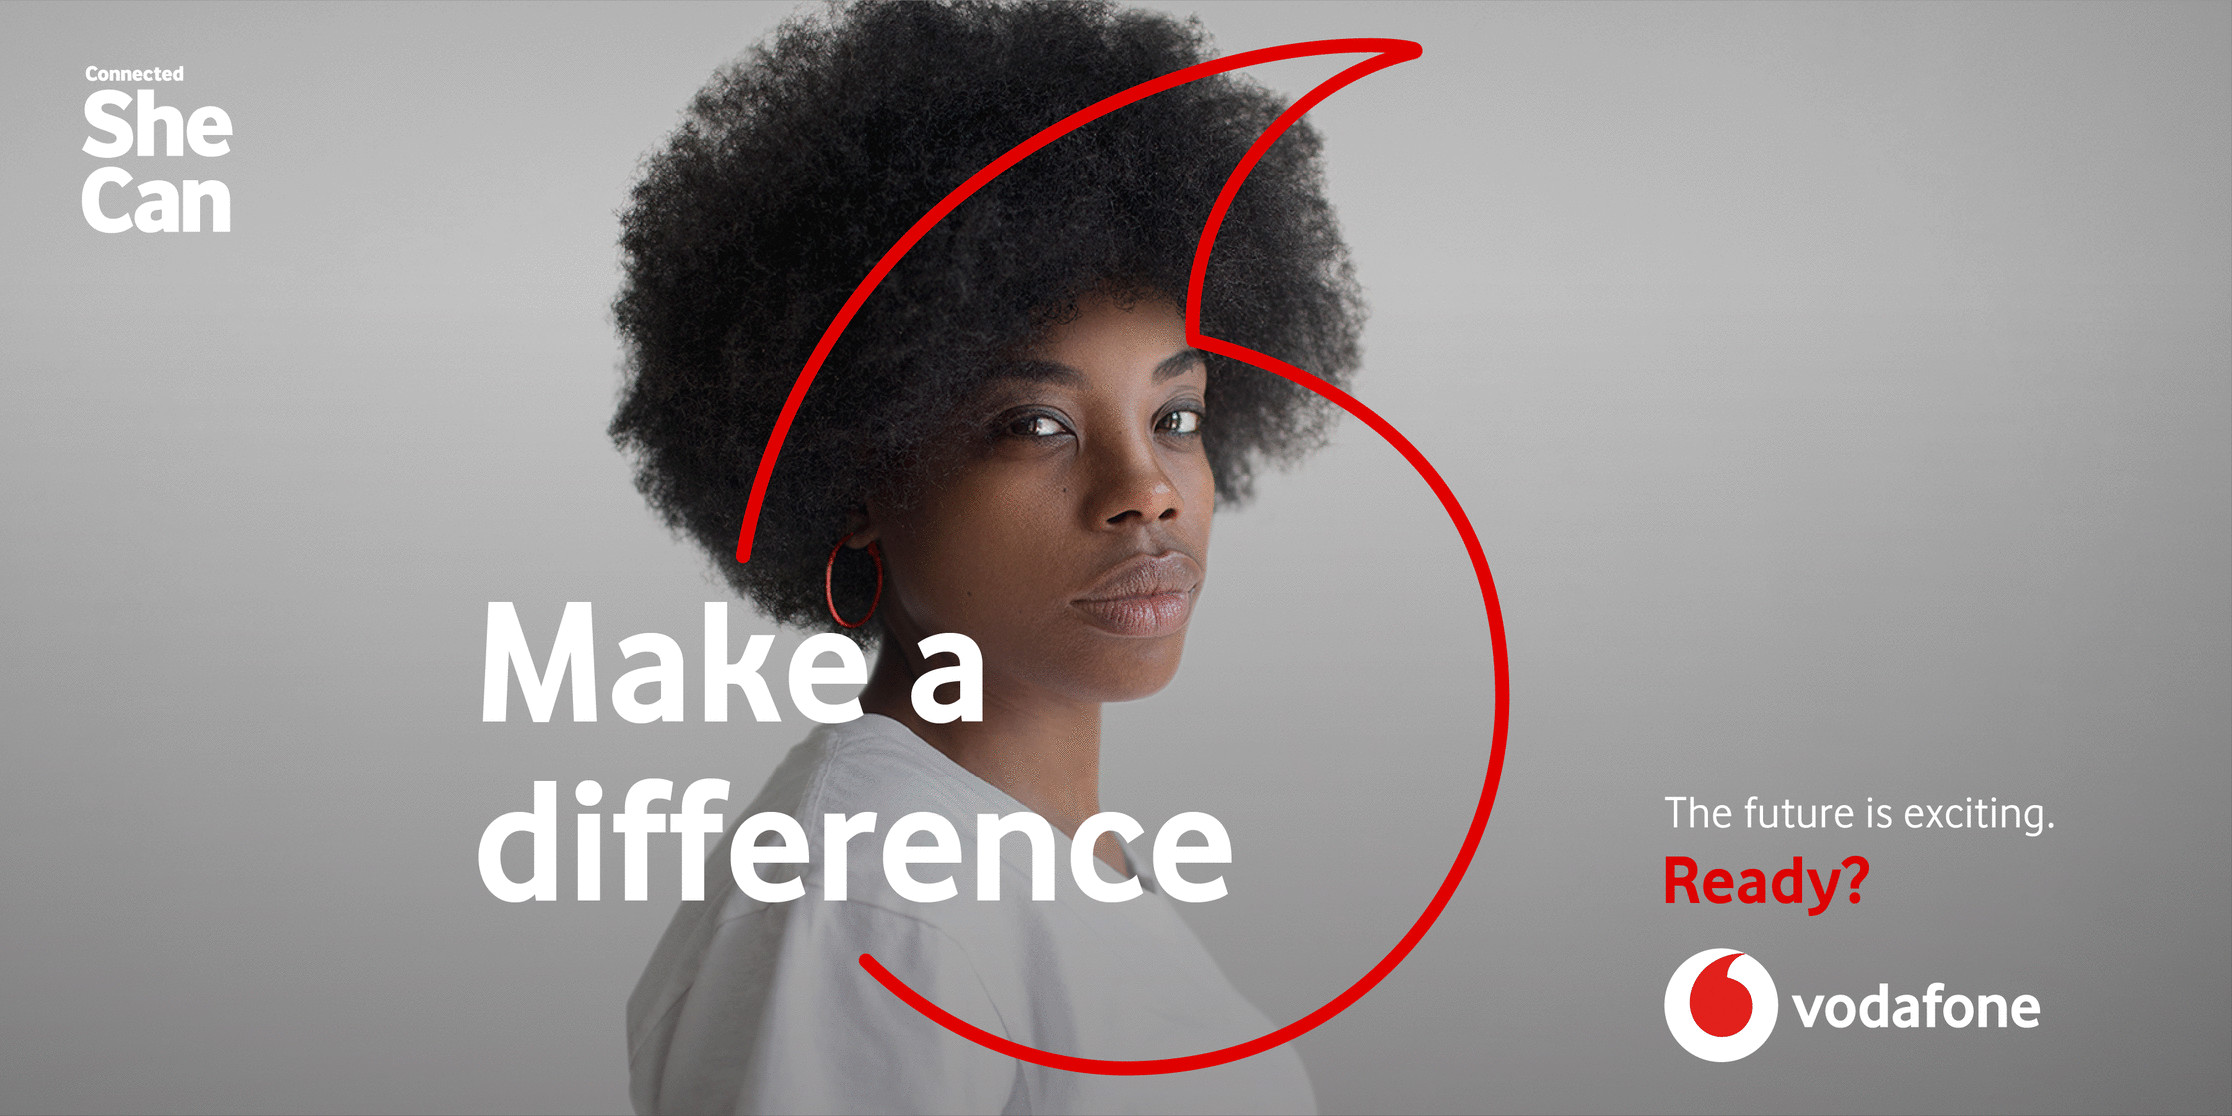 Vodafone is creating a better future for women